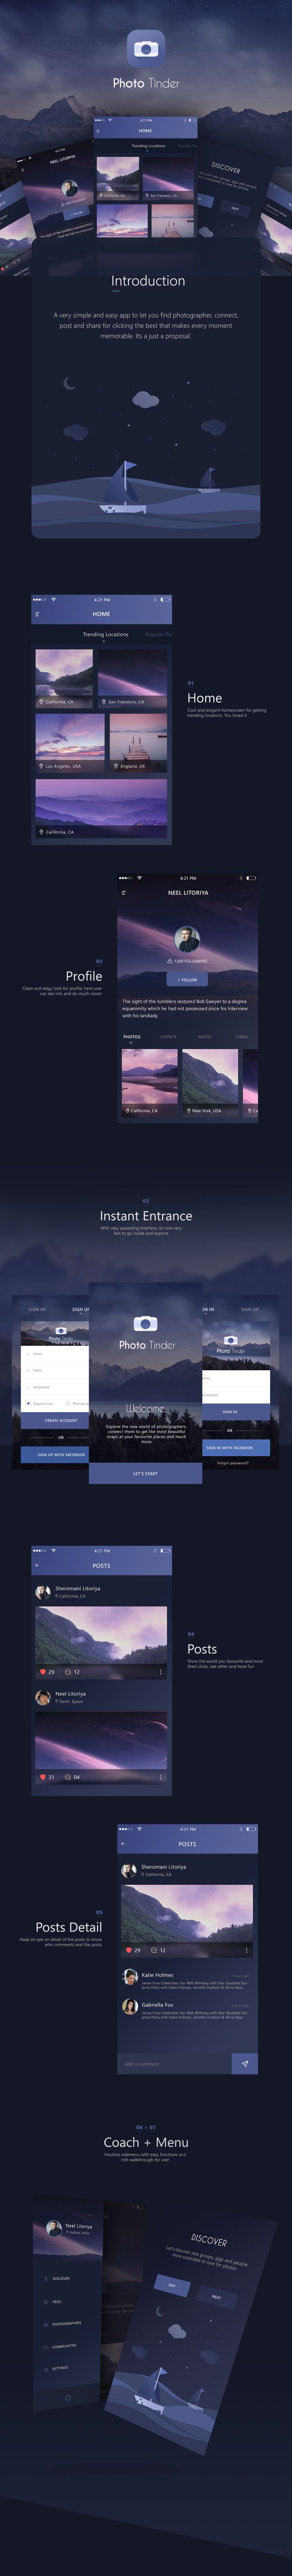 Prakhar Neel Sharma on Behance